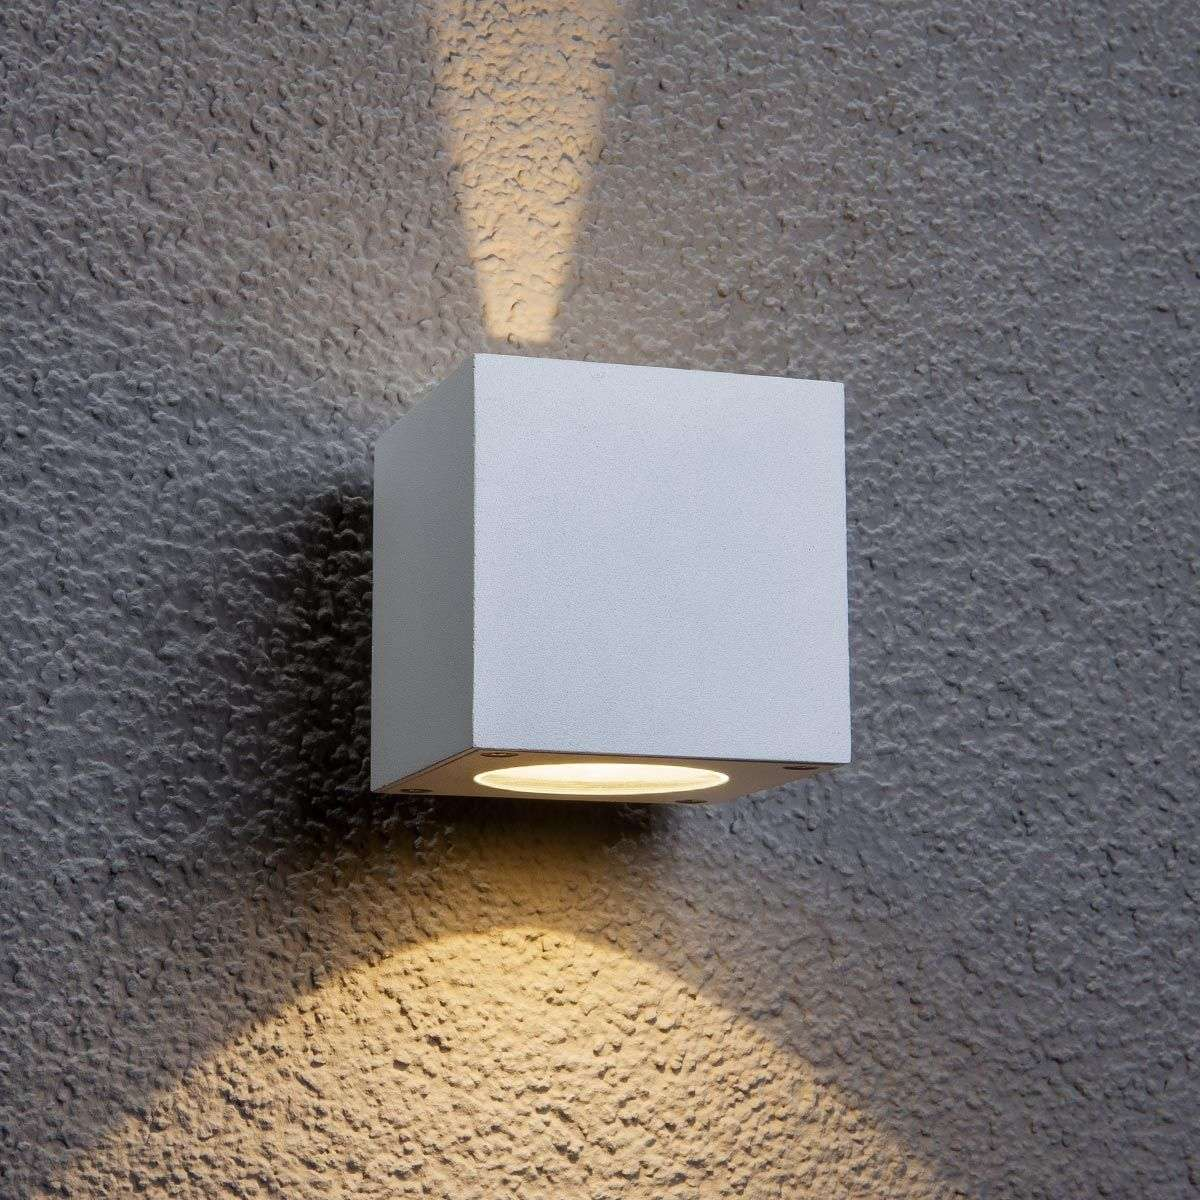 Led Wall Light White: White LED Outdoor Wall Light Jarno, Cube Form